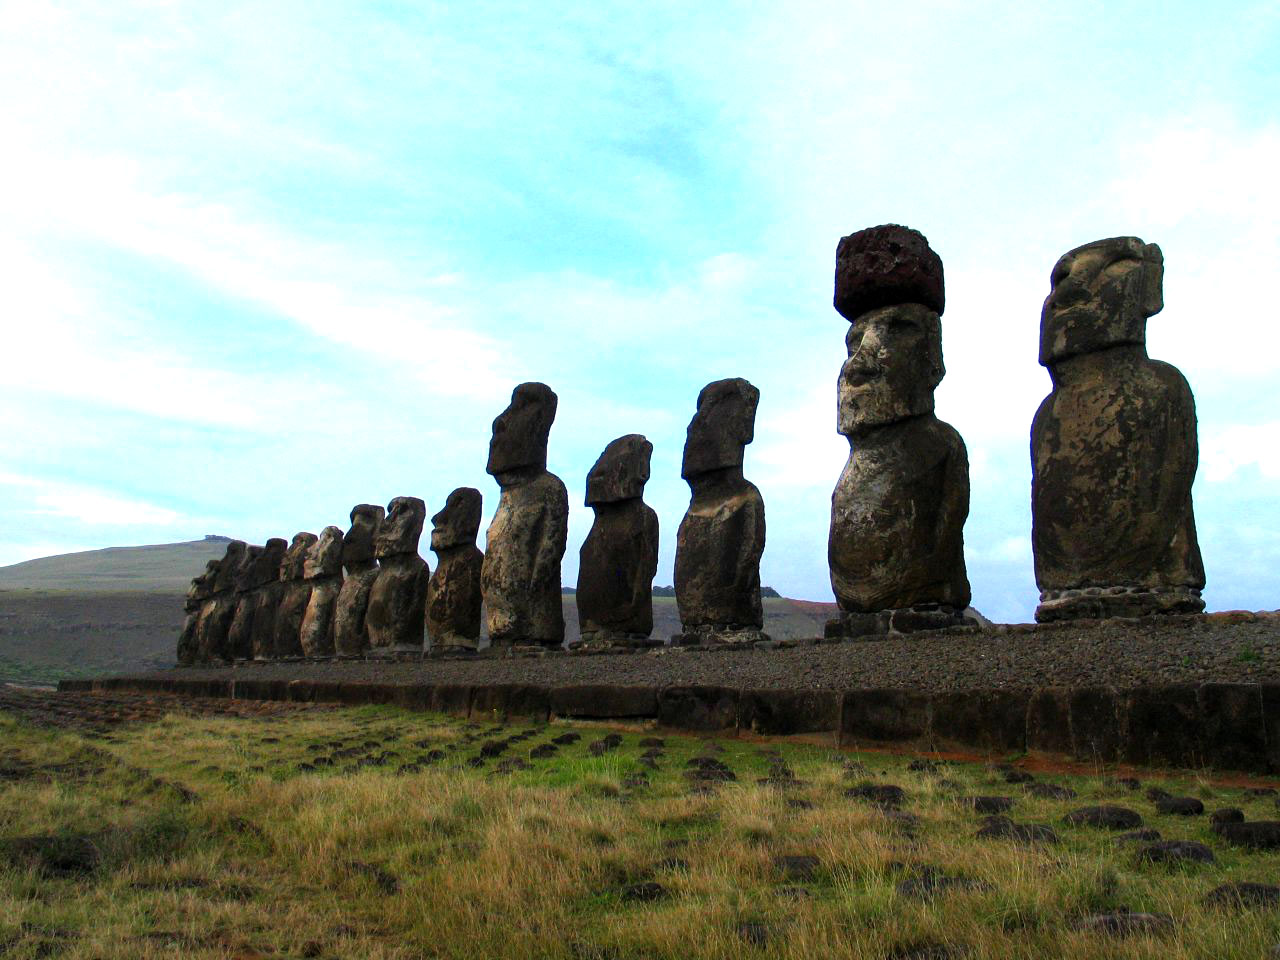 rapa nui1 Gigantic Moai Statues and Heads in Polynesian Easter Island